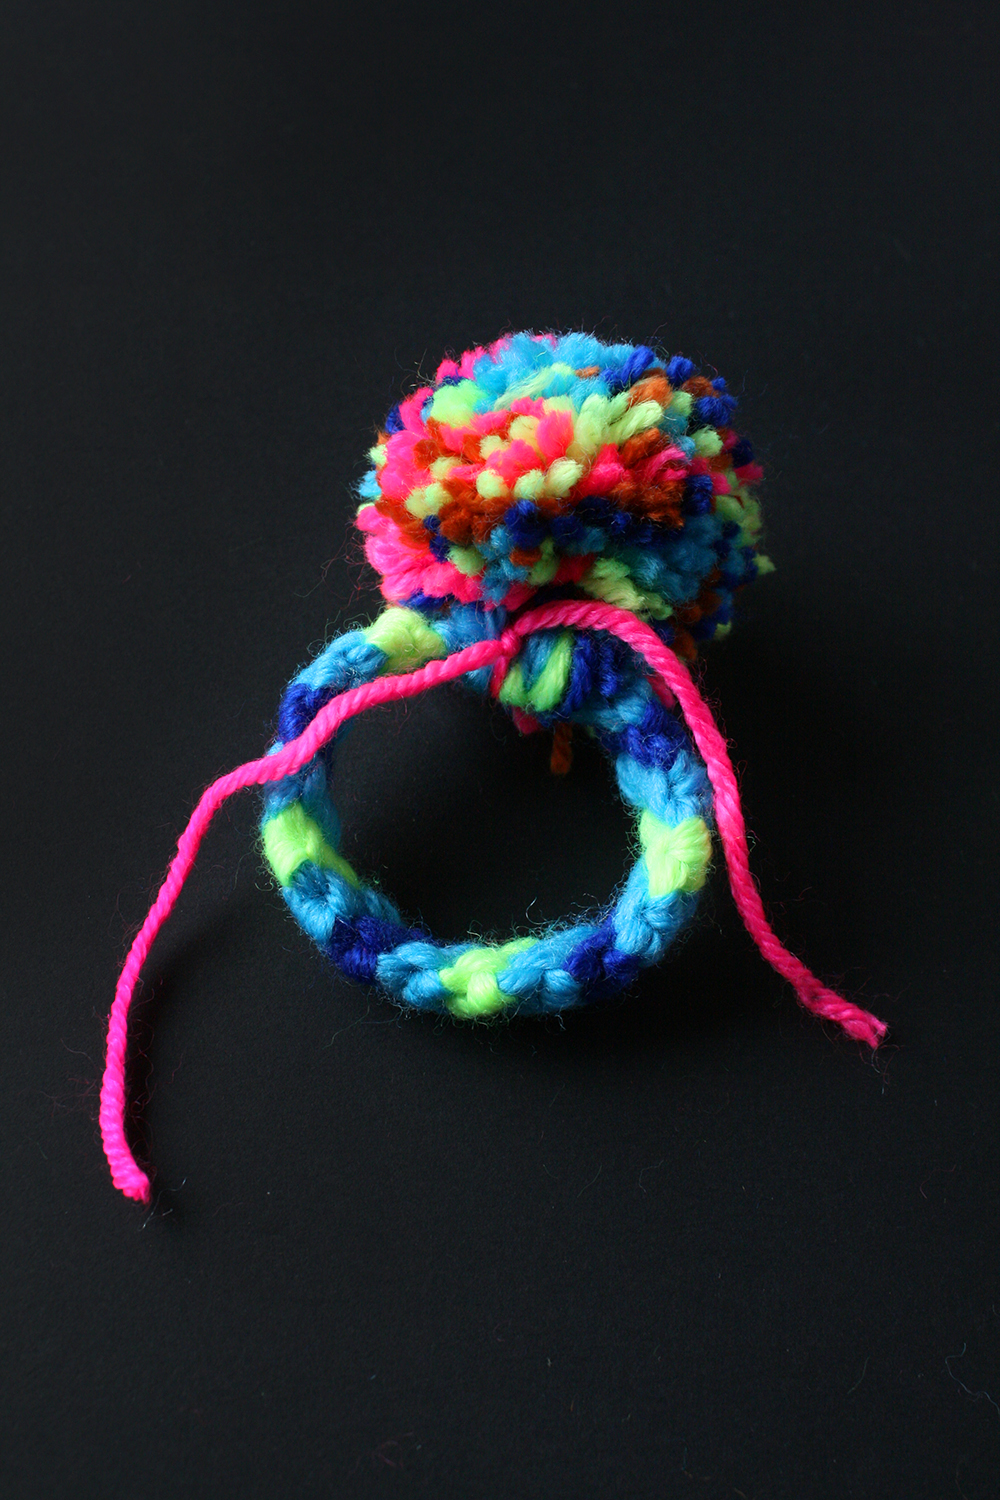 Step 11  Tie the pom pom to the ring in a tight double knot. Make sure the pom pom sits over the knot in the weaving so it hides it and everything is neat. Trim off the excess tie wool, and you're done!